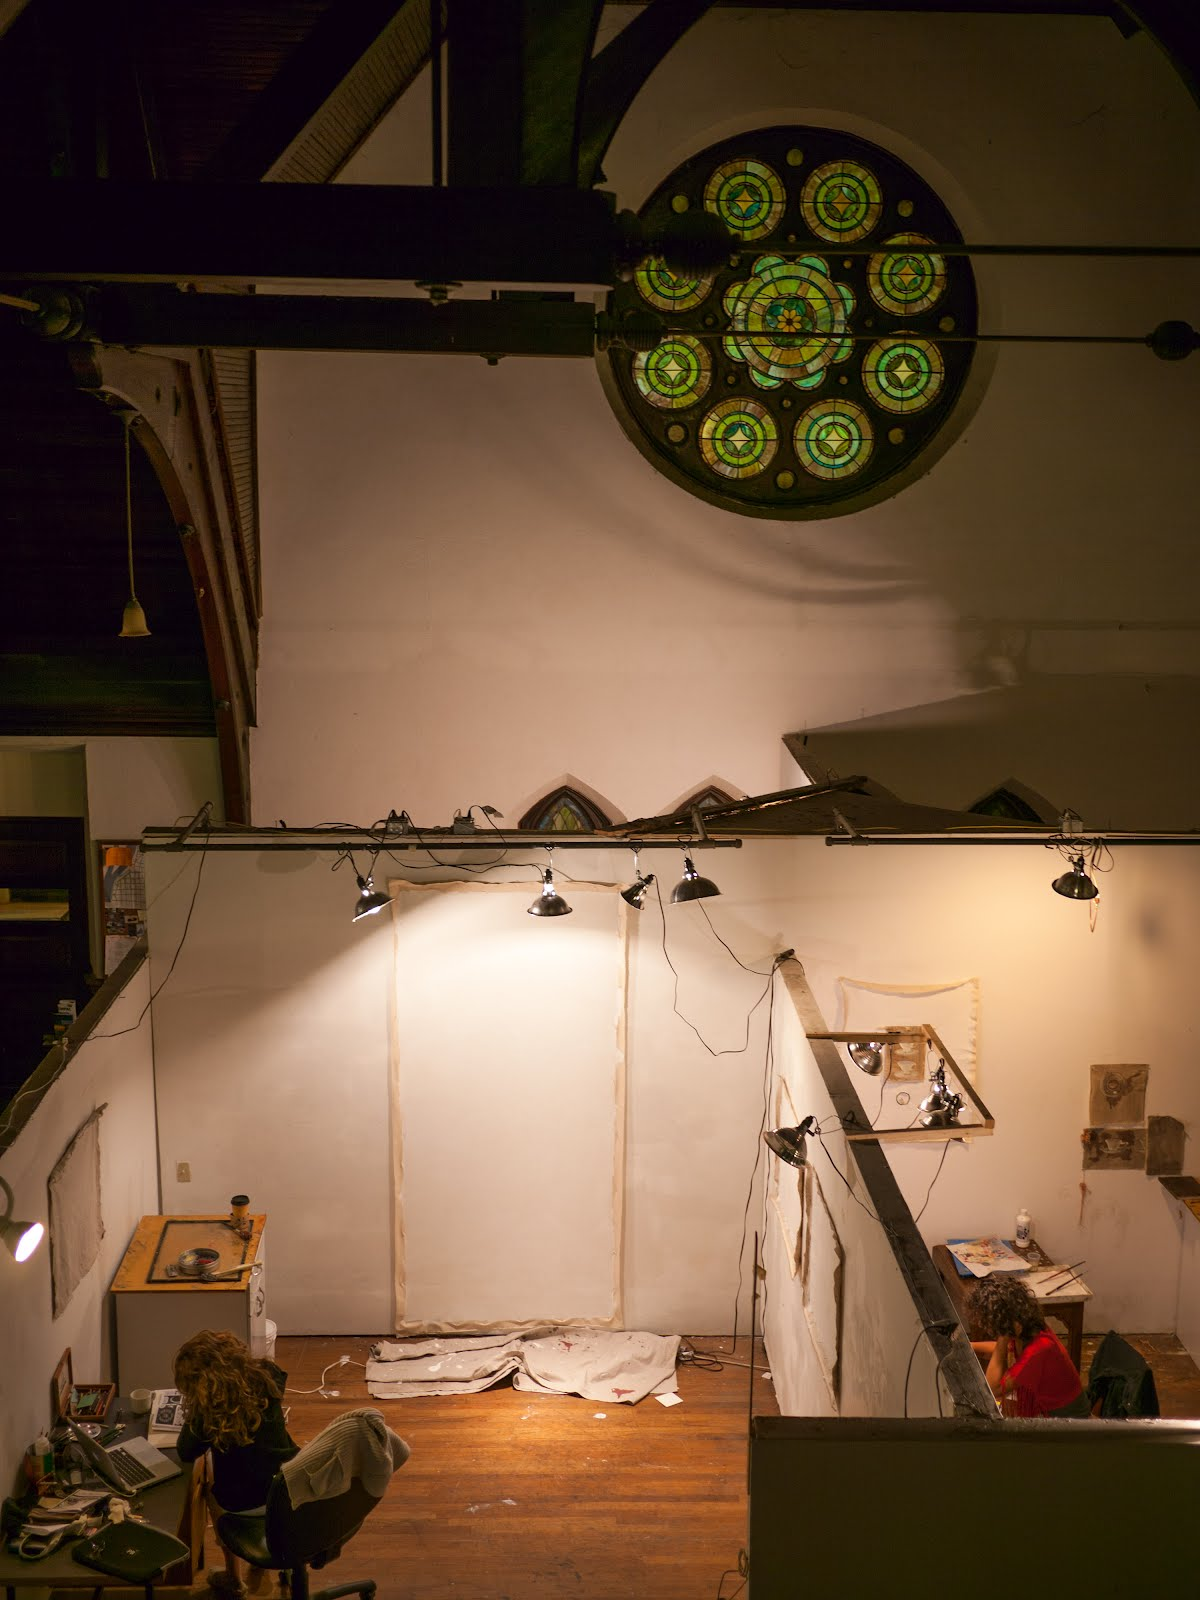 Inside, the new CAC studios